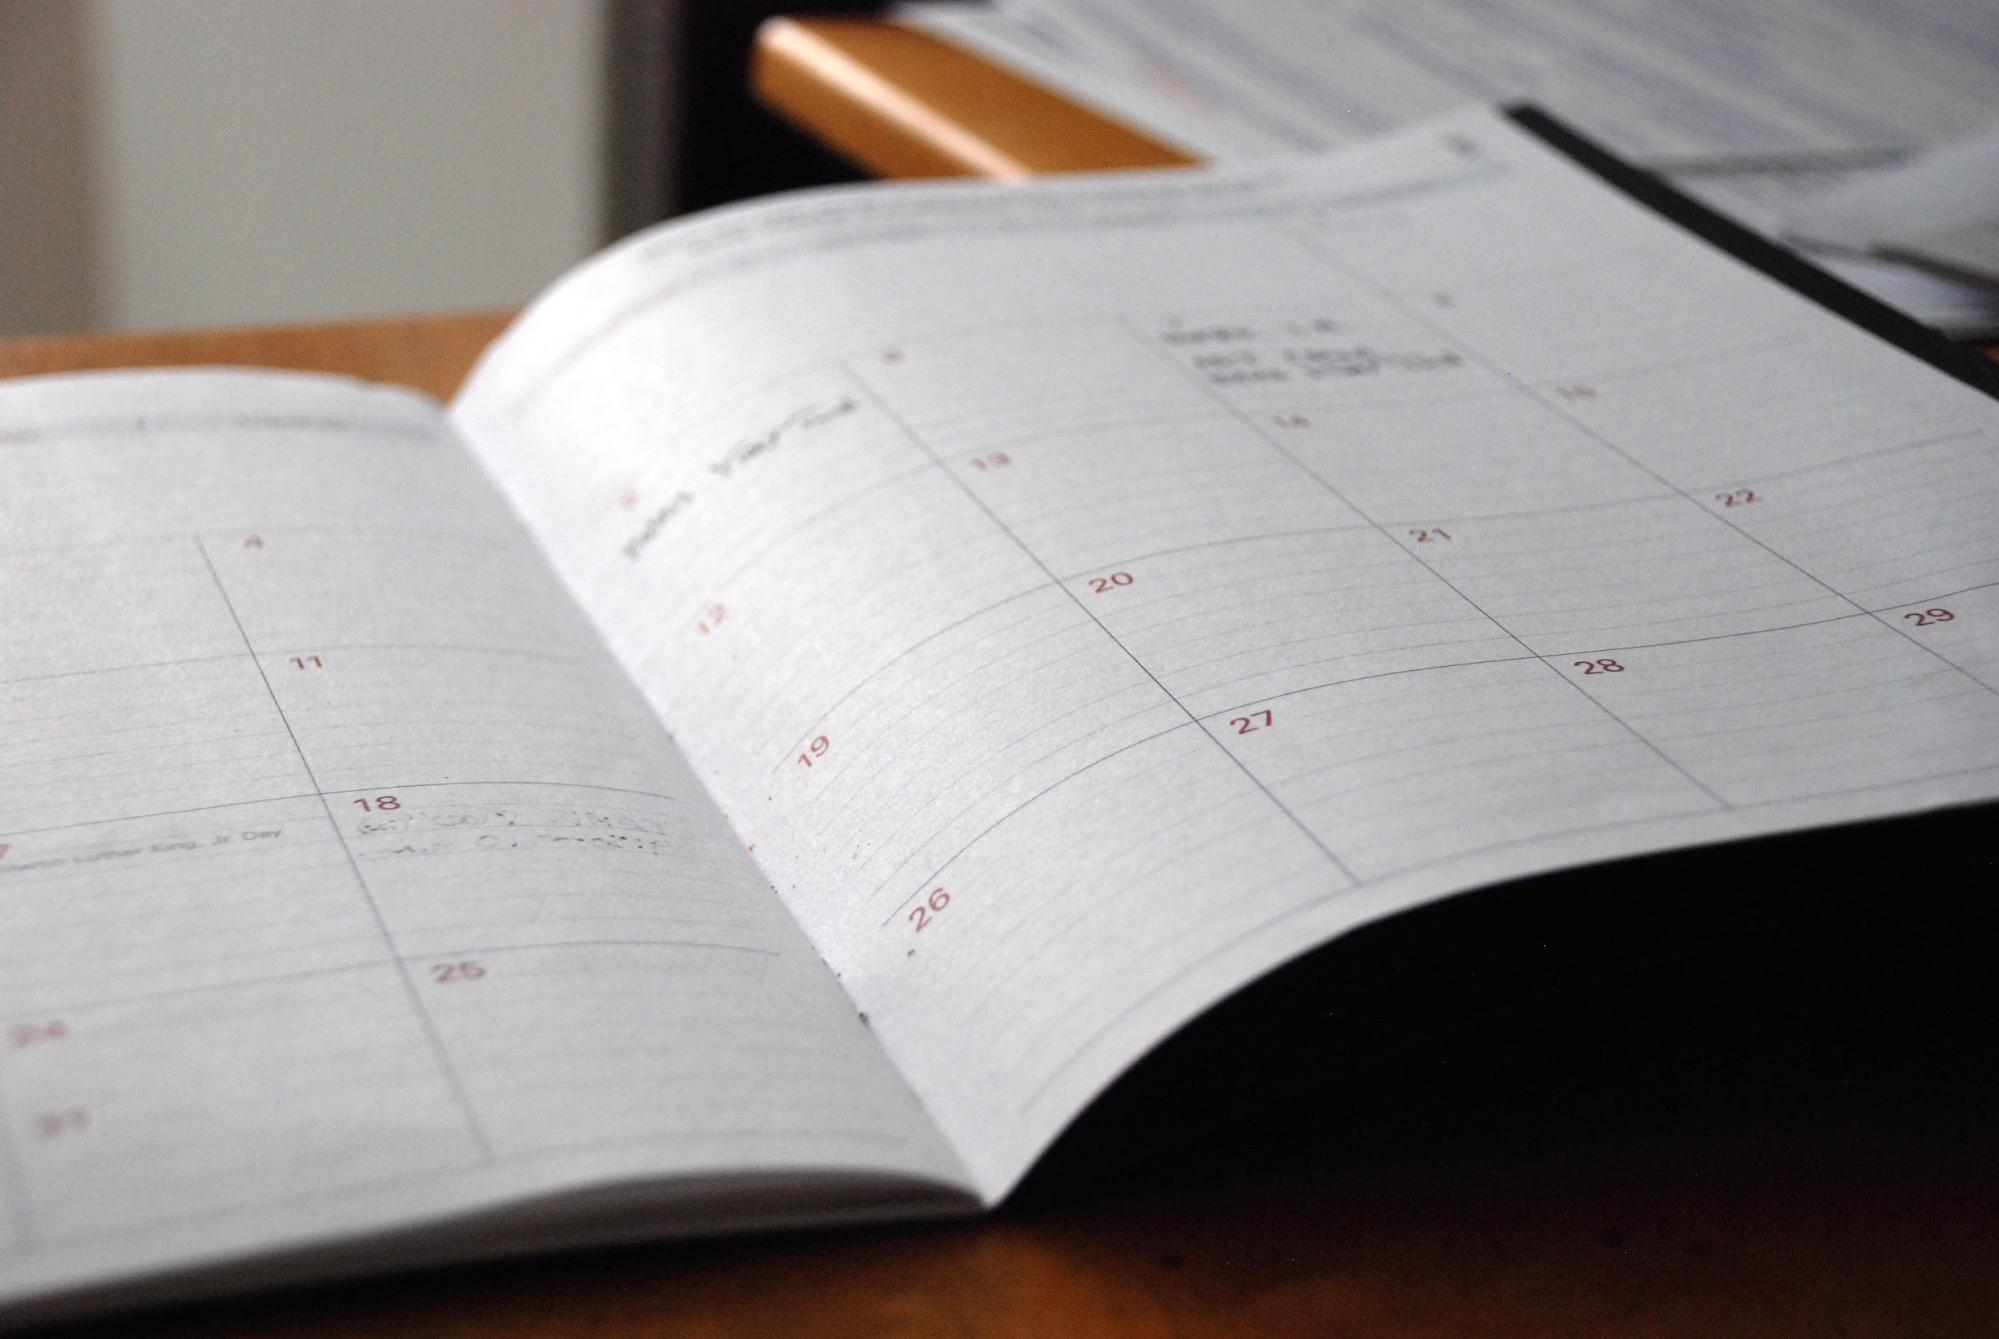 Paper calendar for employee scheduling